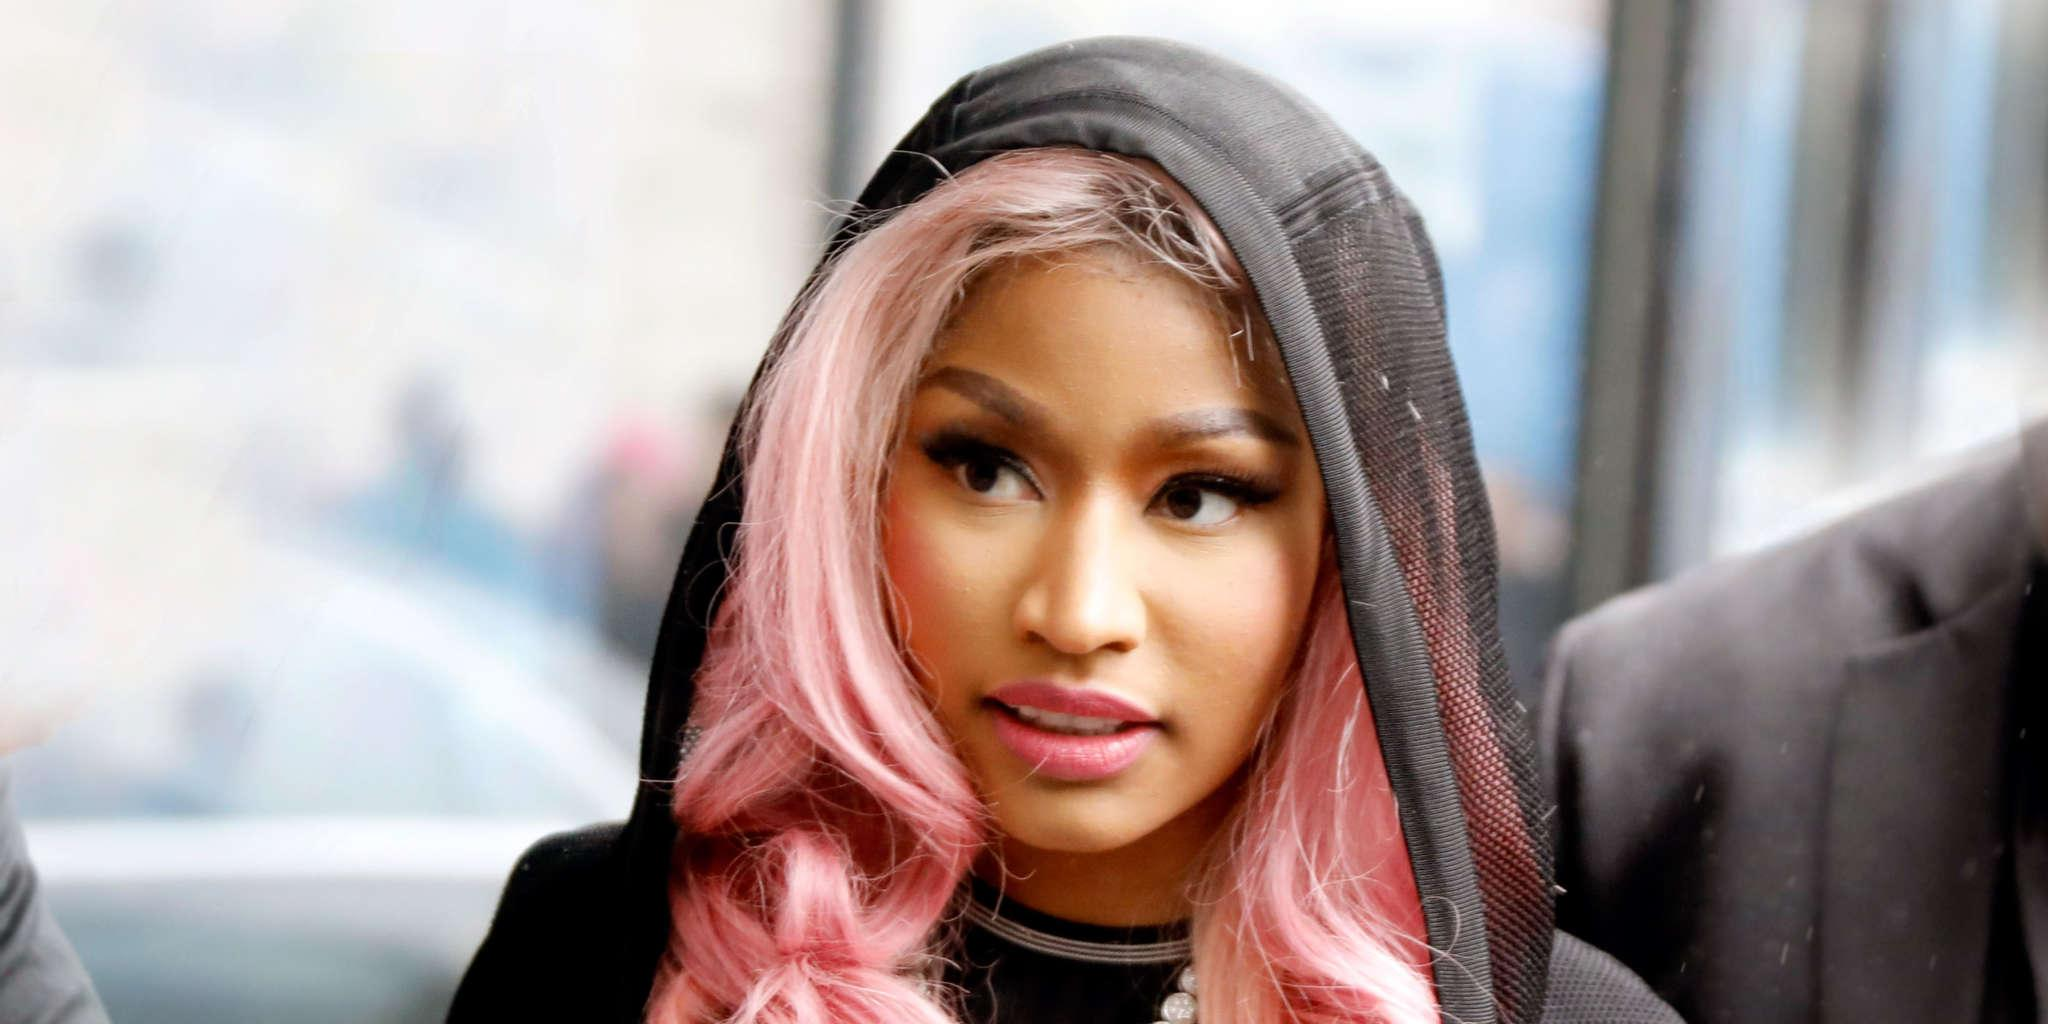 Nicki Minaj's Fans Have 'Missing' Posters Of Their Idol Placed All Over The Town